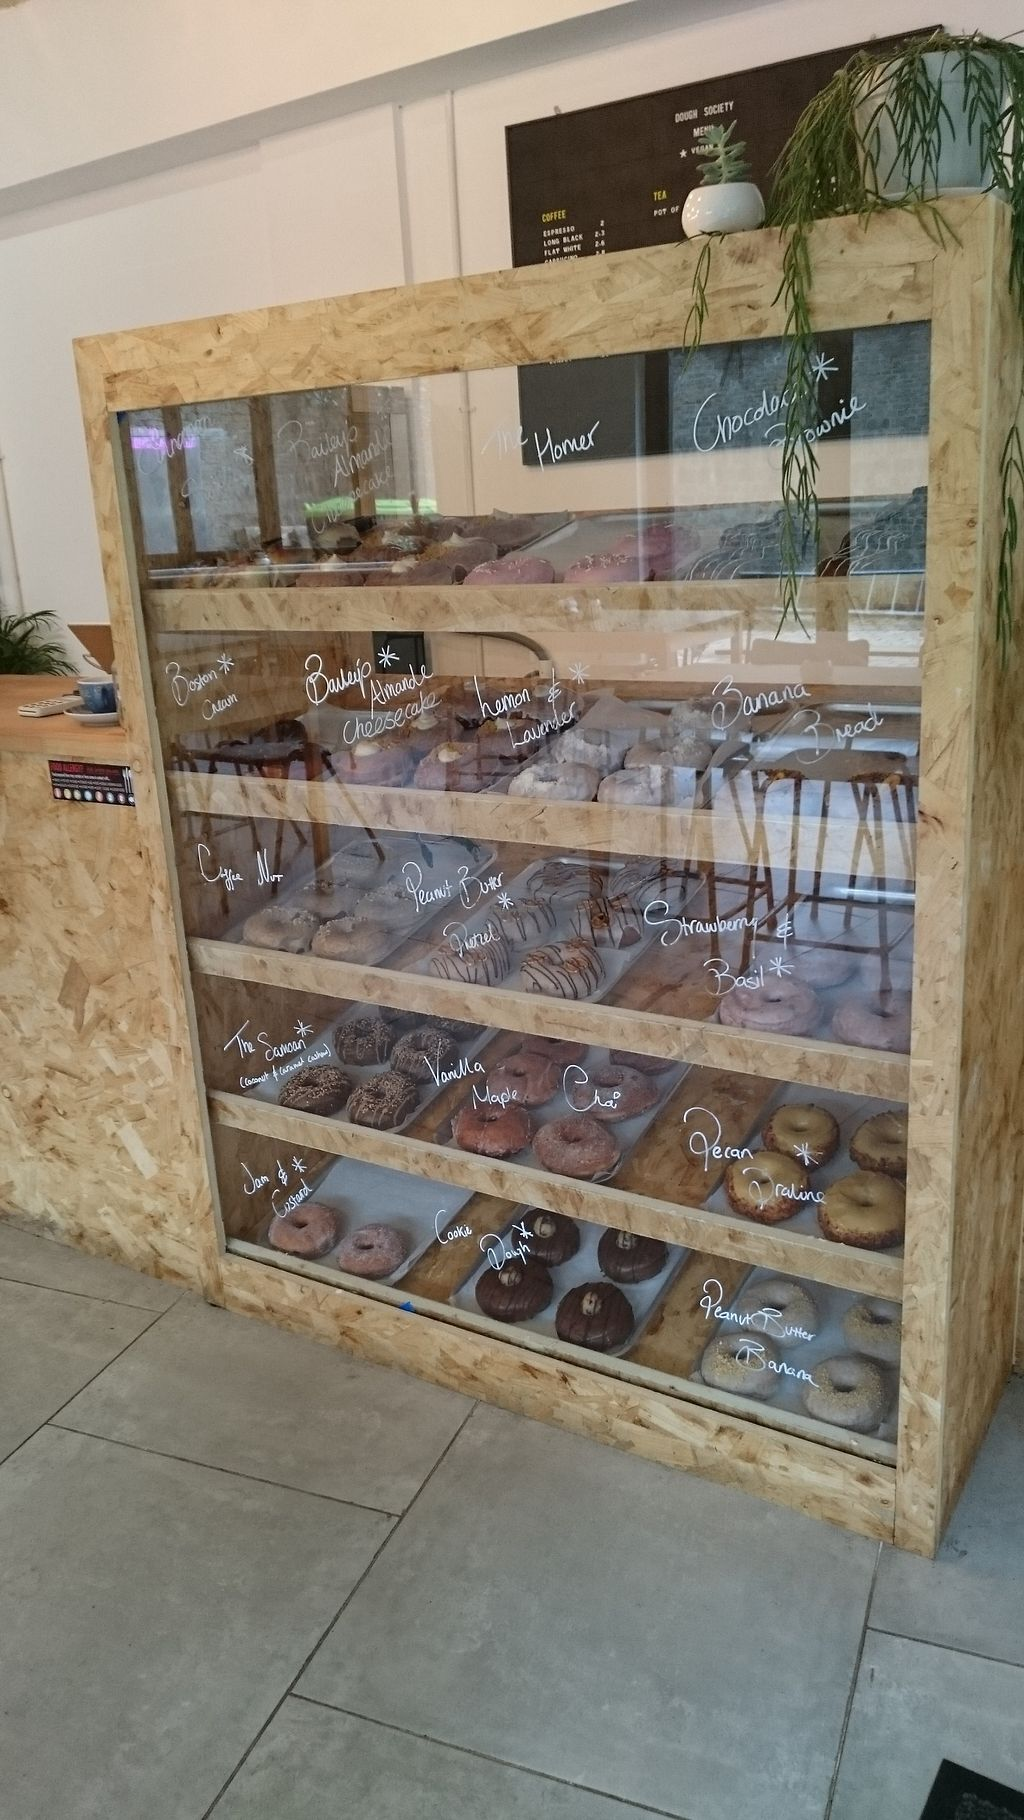 """Photo of Dough Society  by <a href=""""/members/profile/Layra"""">Layra</a> <br/>Doughnut selection <br/> April 3, 2018  - <a href='/contact/abuse/image/109611/380347'>Report</a>"""